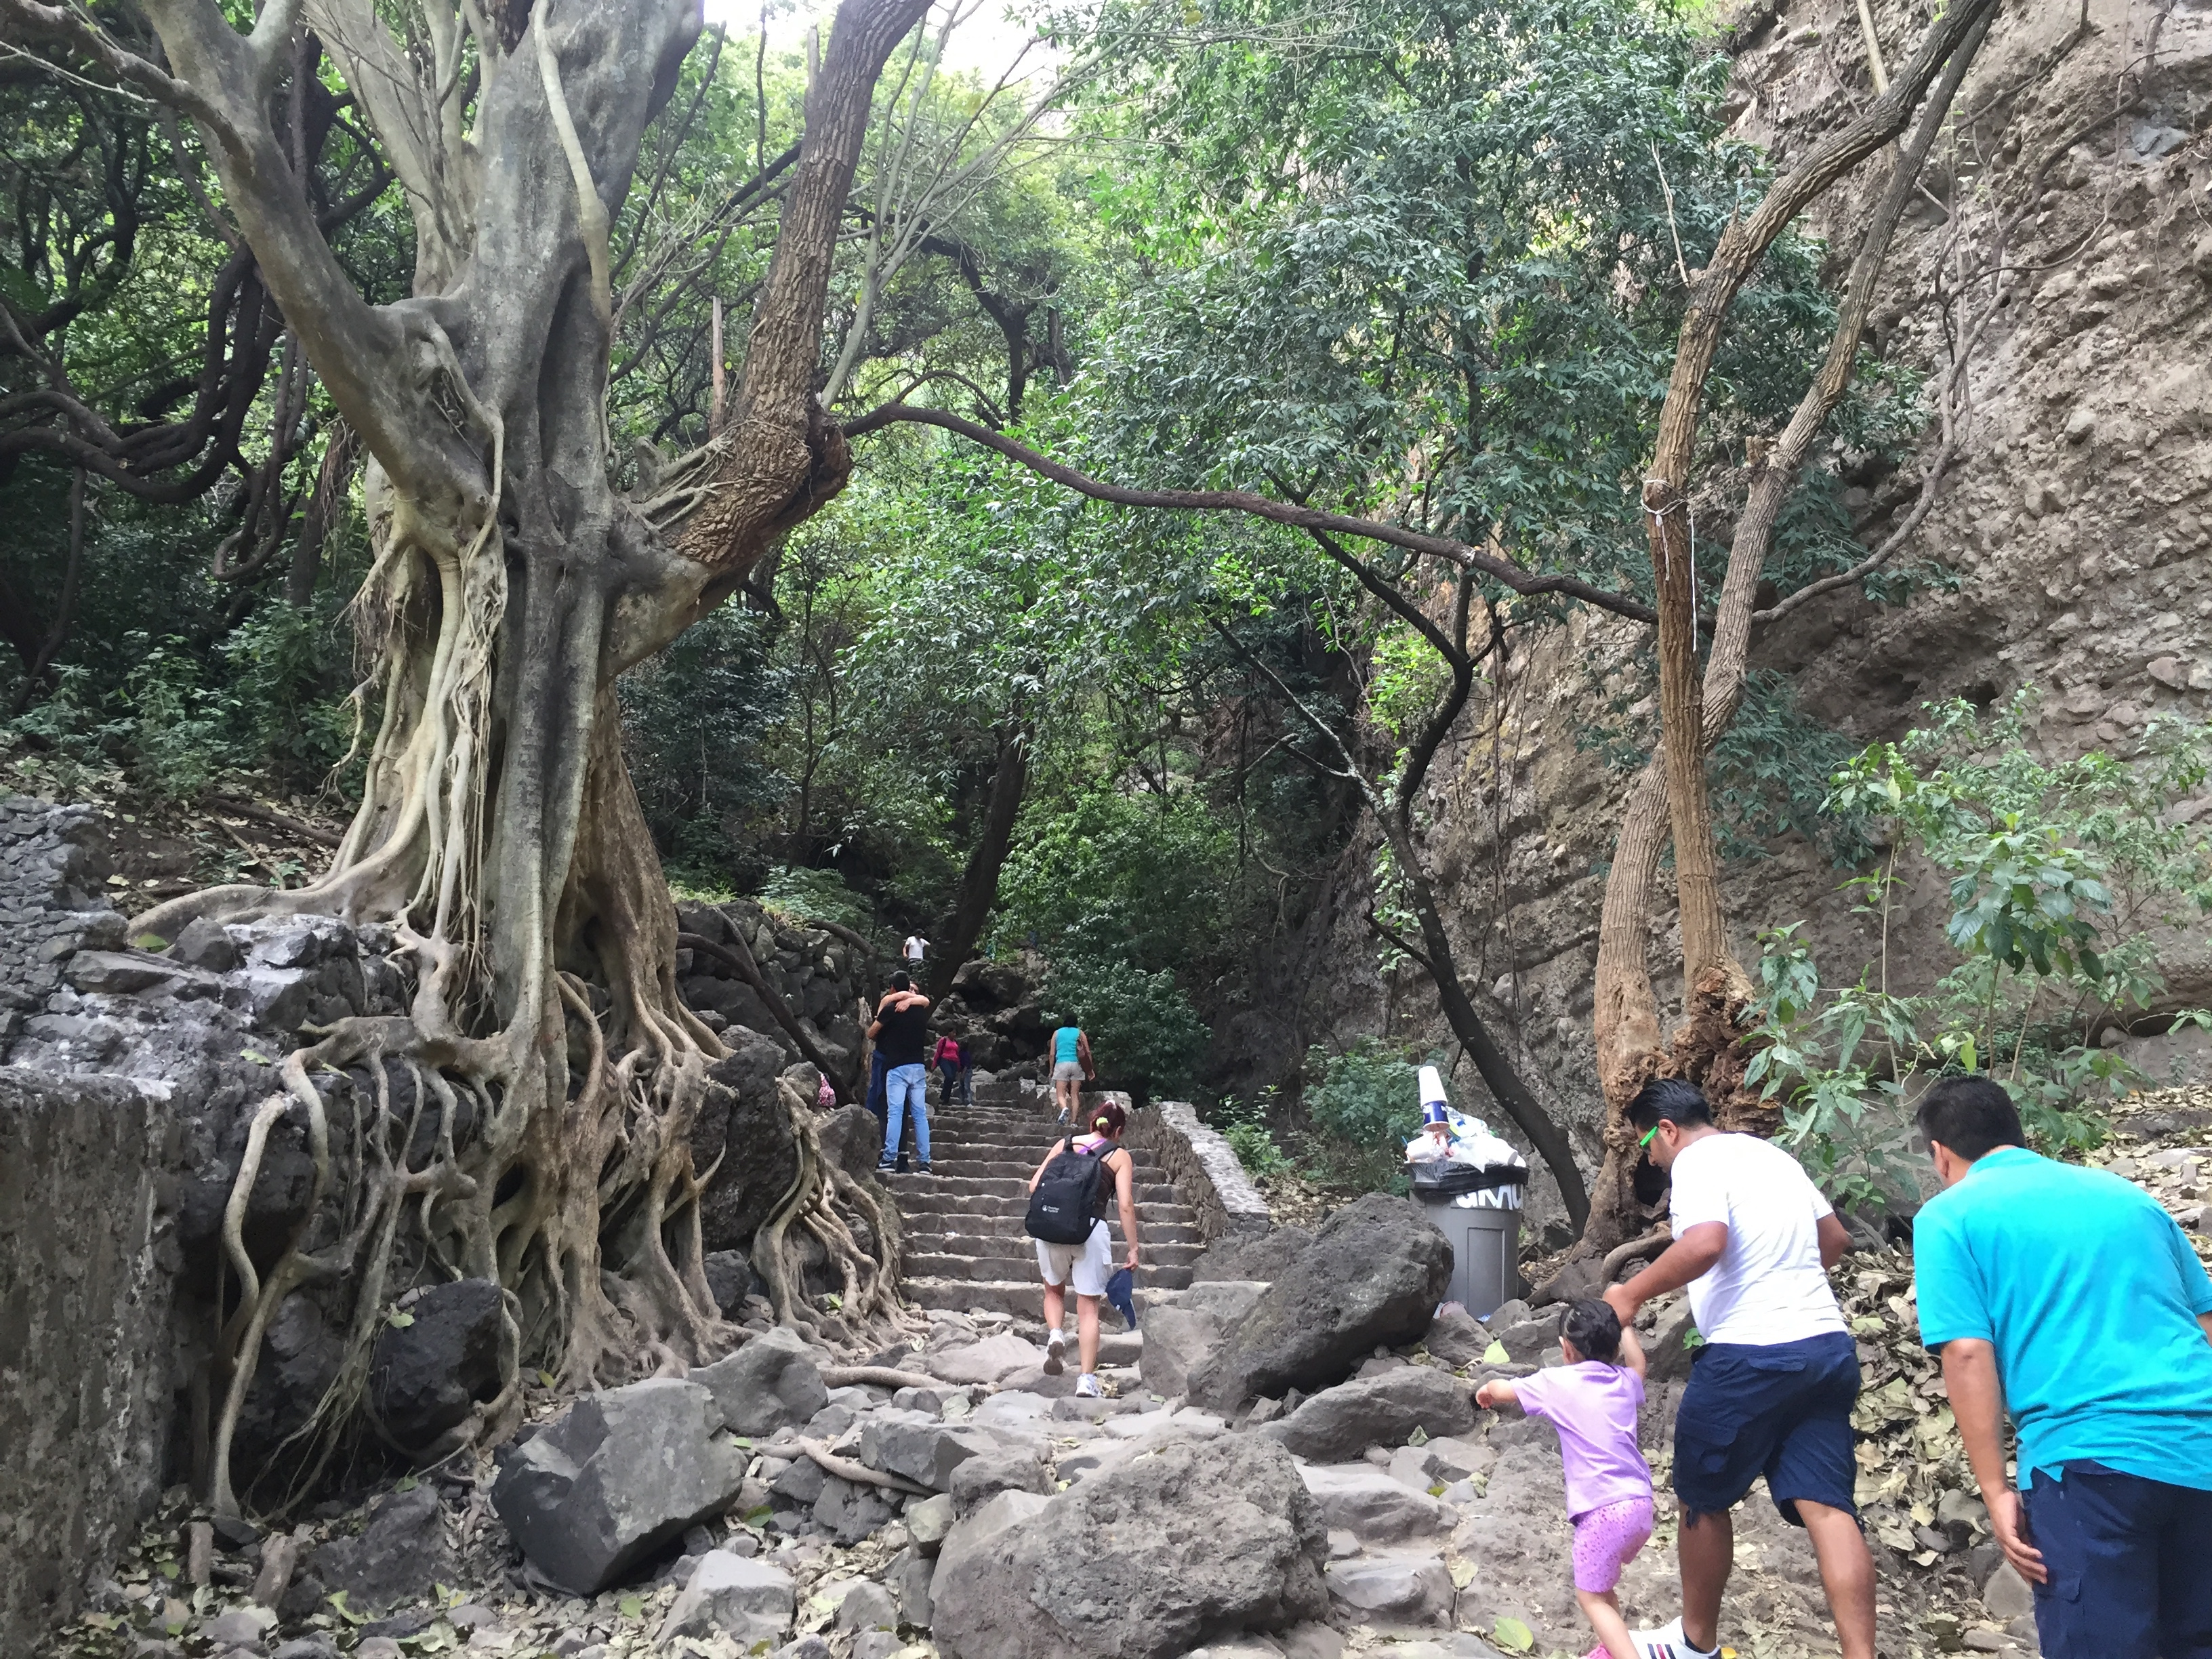 Tourists walk through the jungle of Tepoztlan, Mexico.